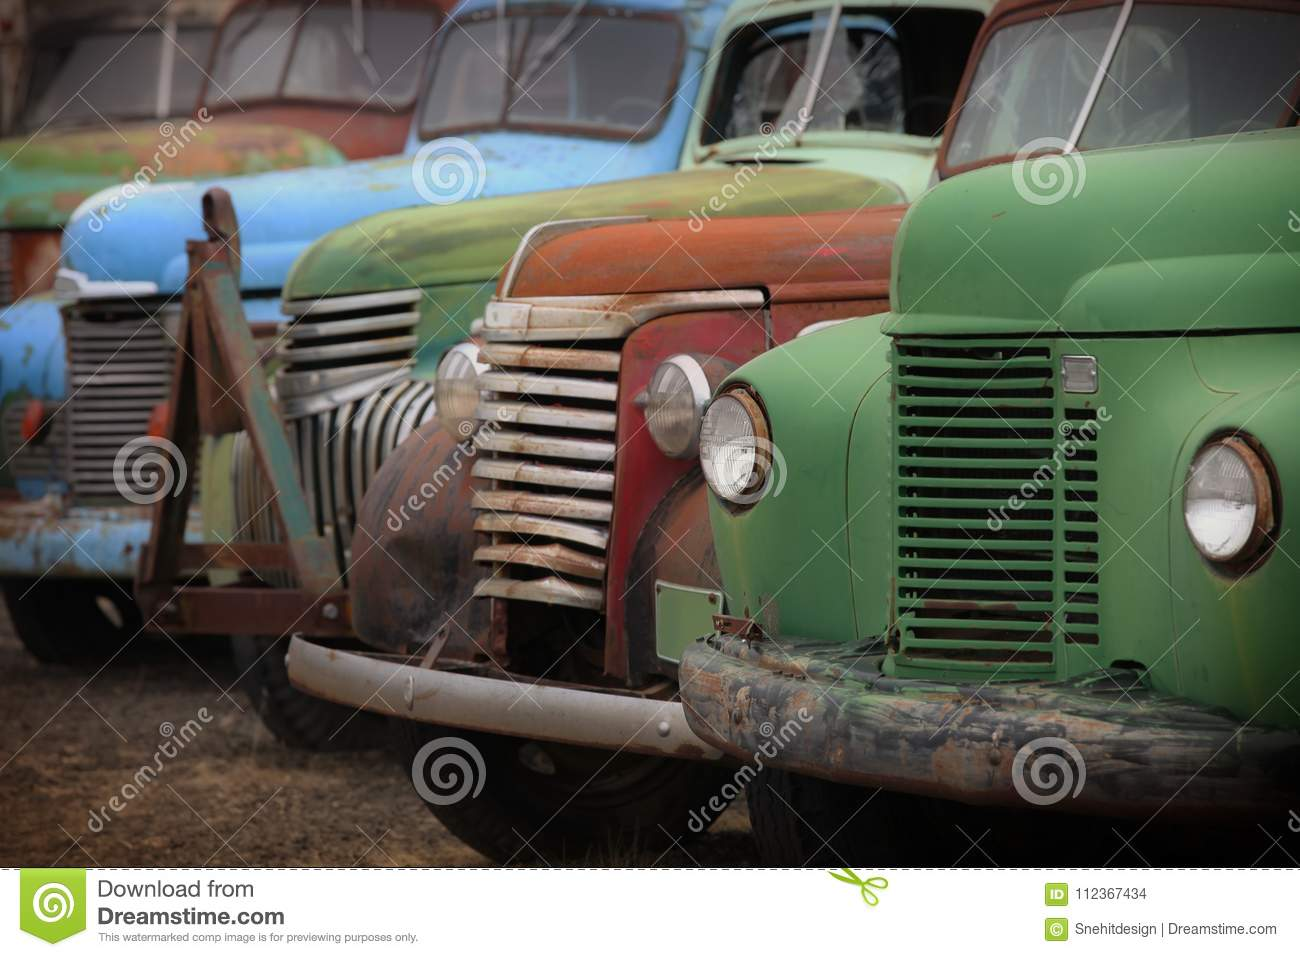 Old rusty abandoned trucks stock photo. Image of broken - 112367434